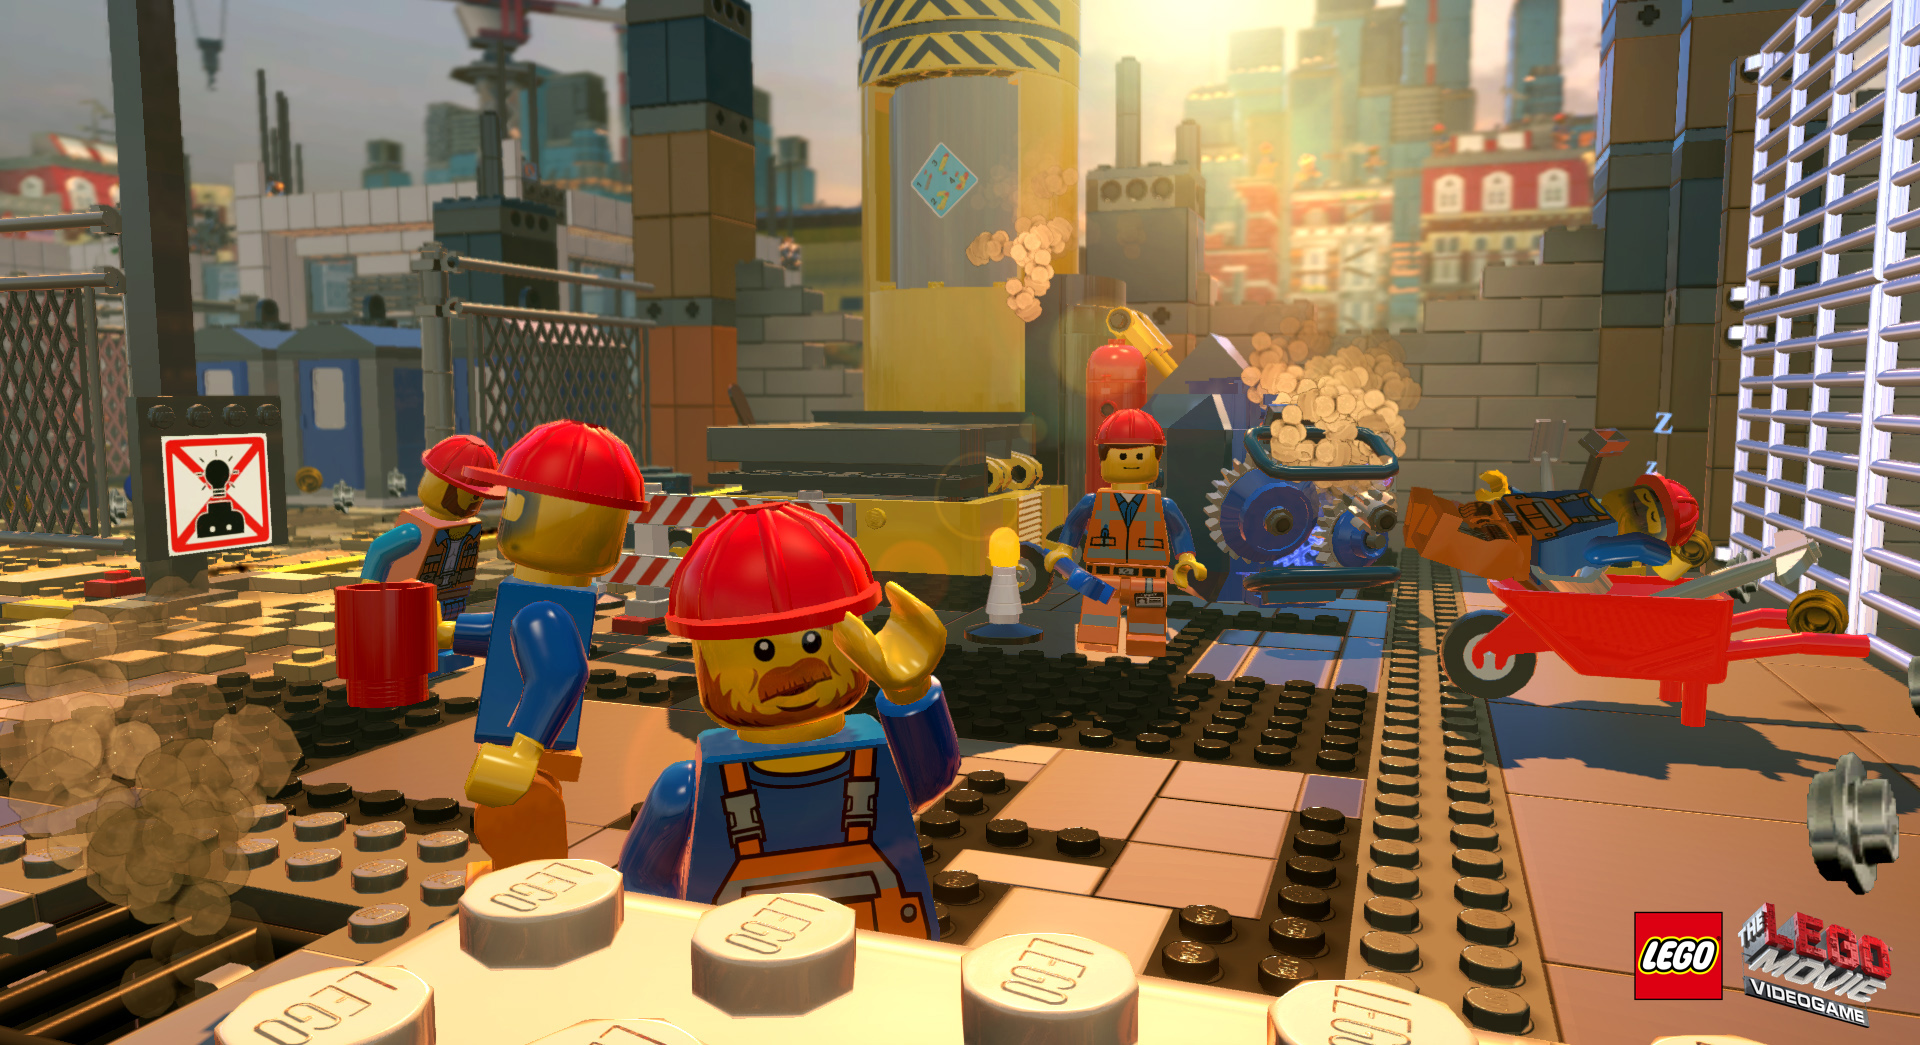 The LEGO Movie Videogame Tlm_bricksburg16_26490